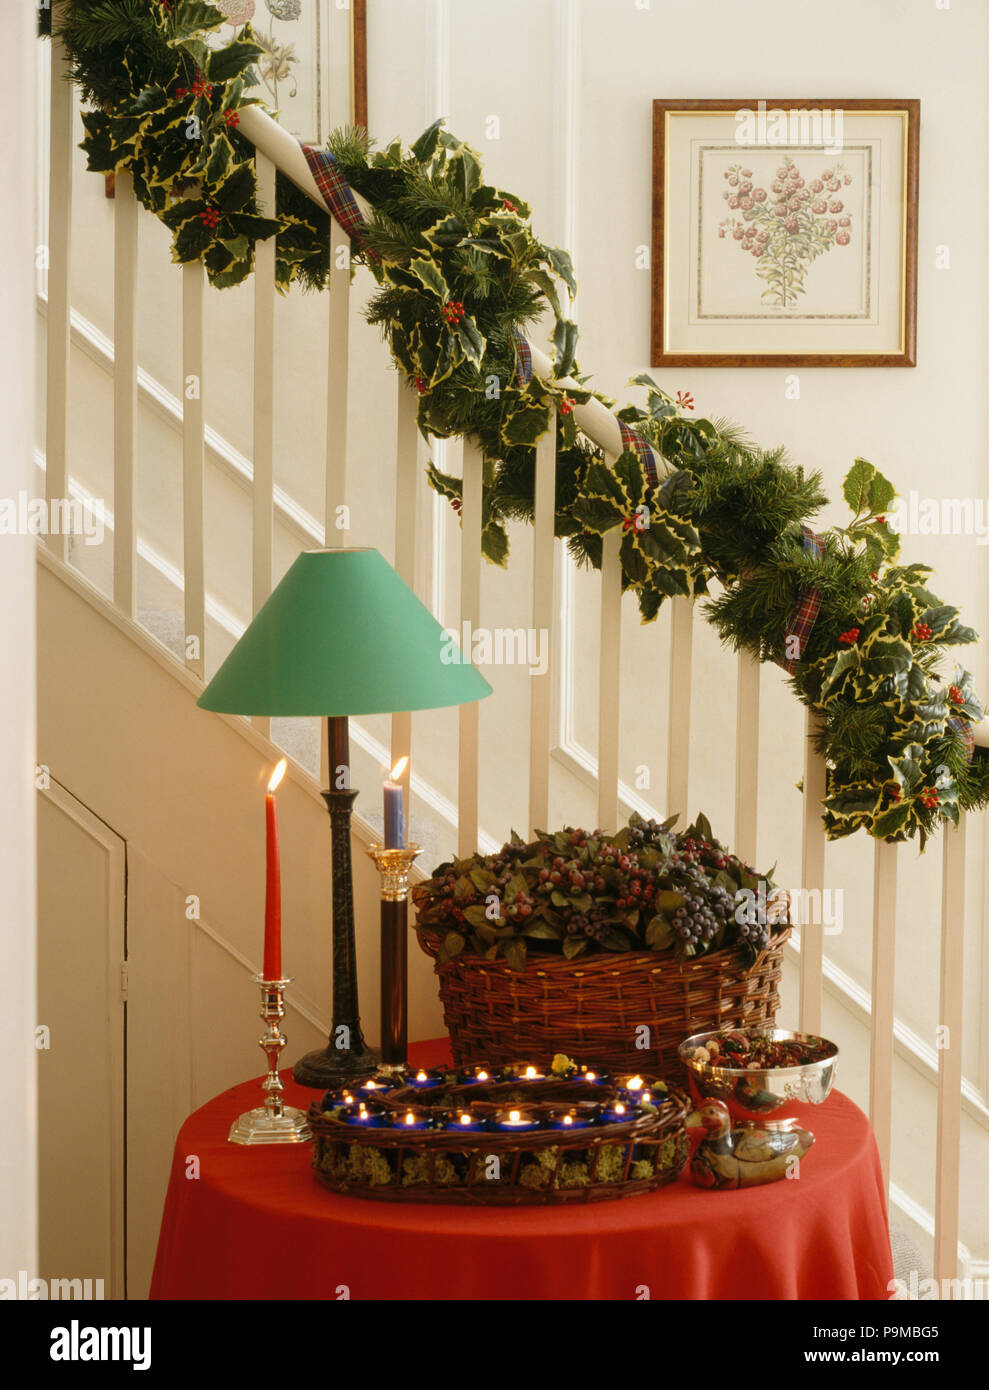 Christmas Garland On Staircase Above Green Lamp And Decorations On